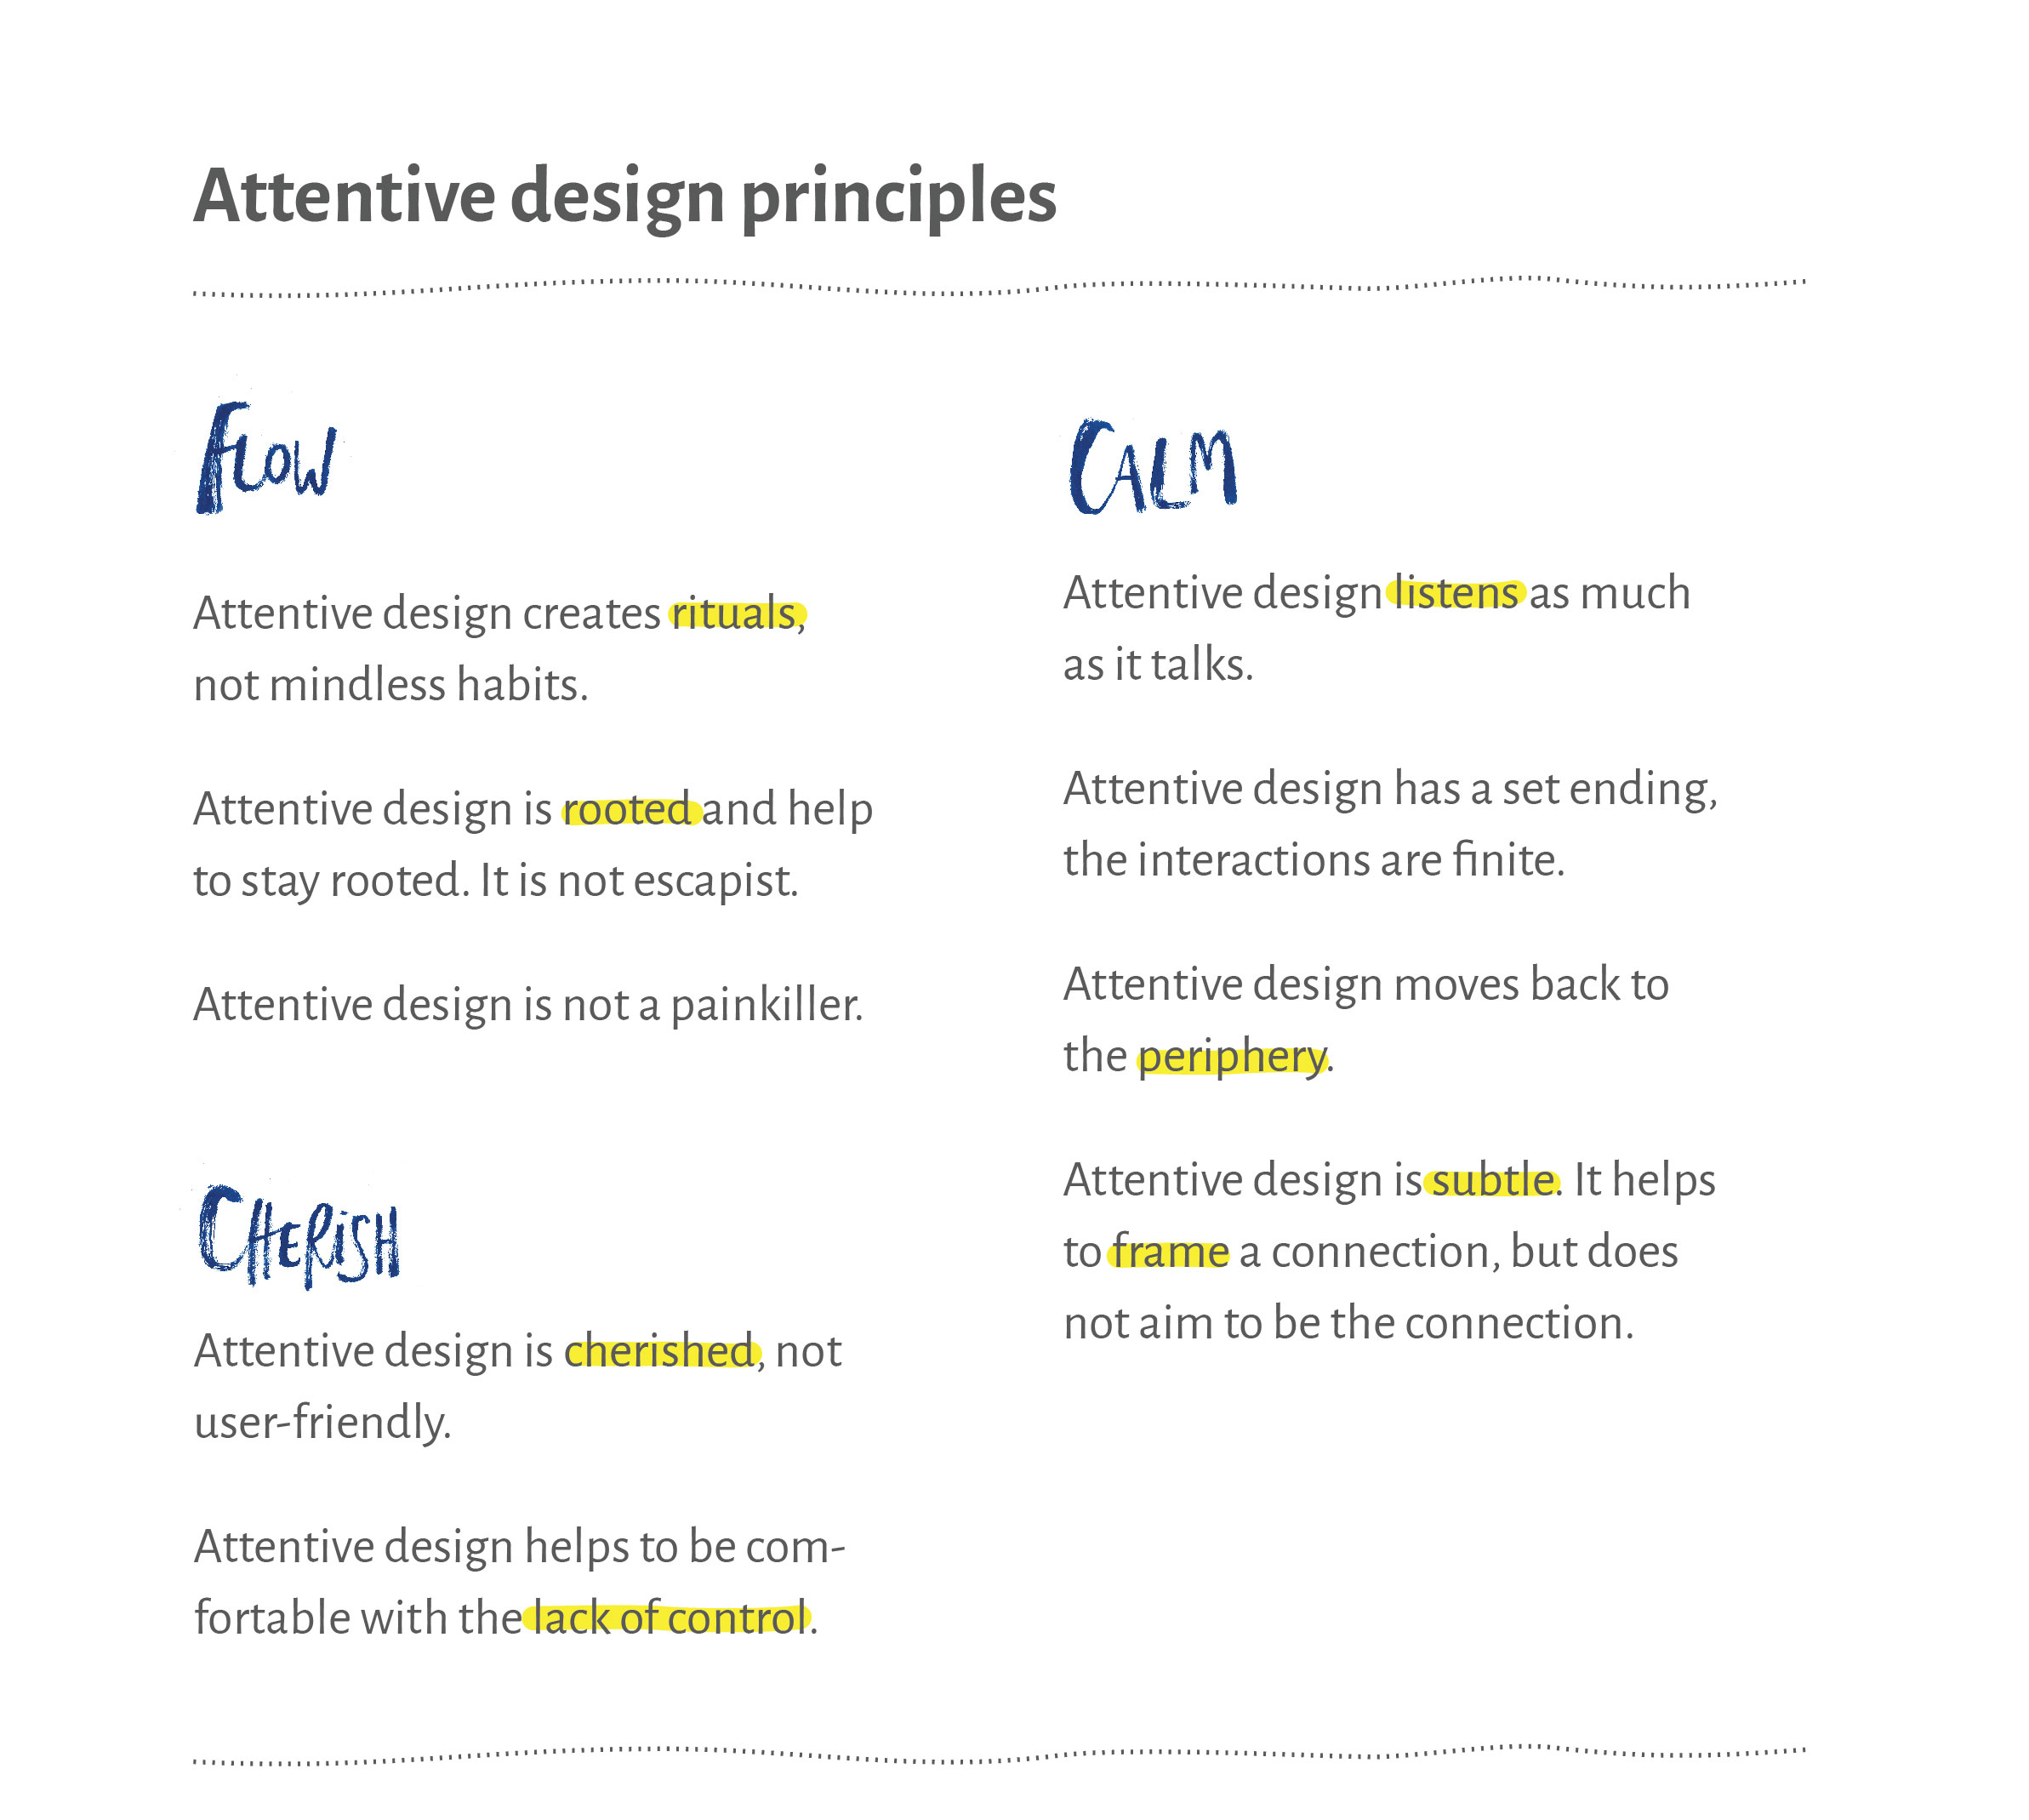 Attentive design principles